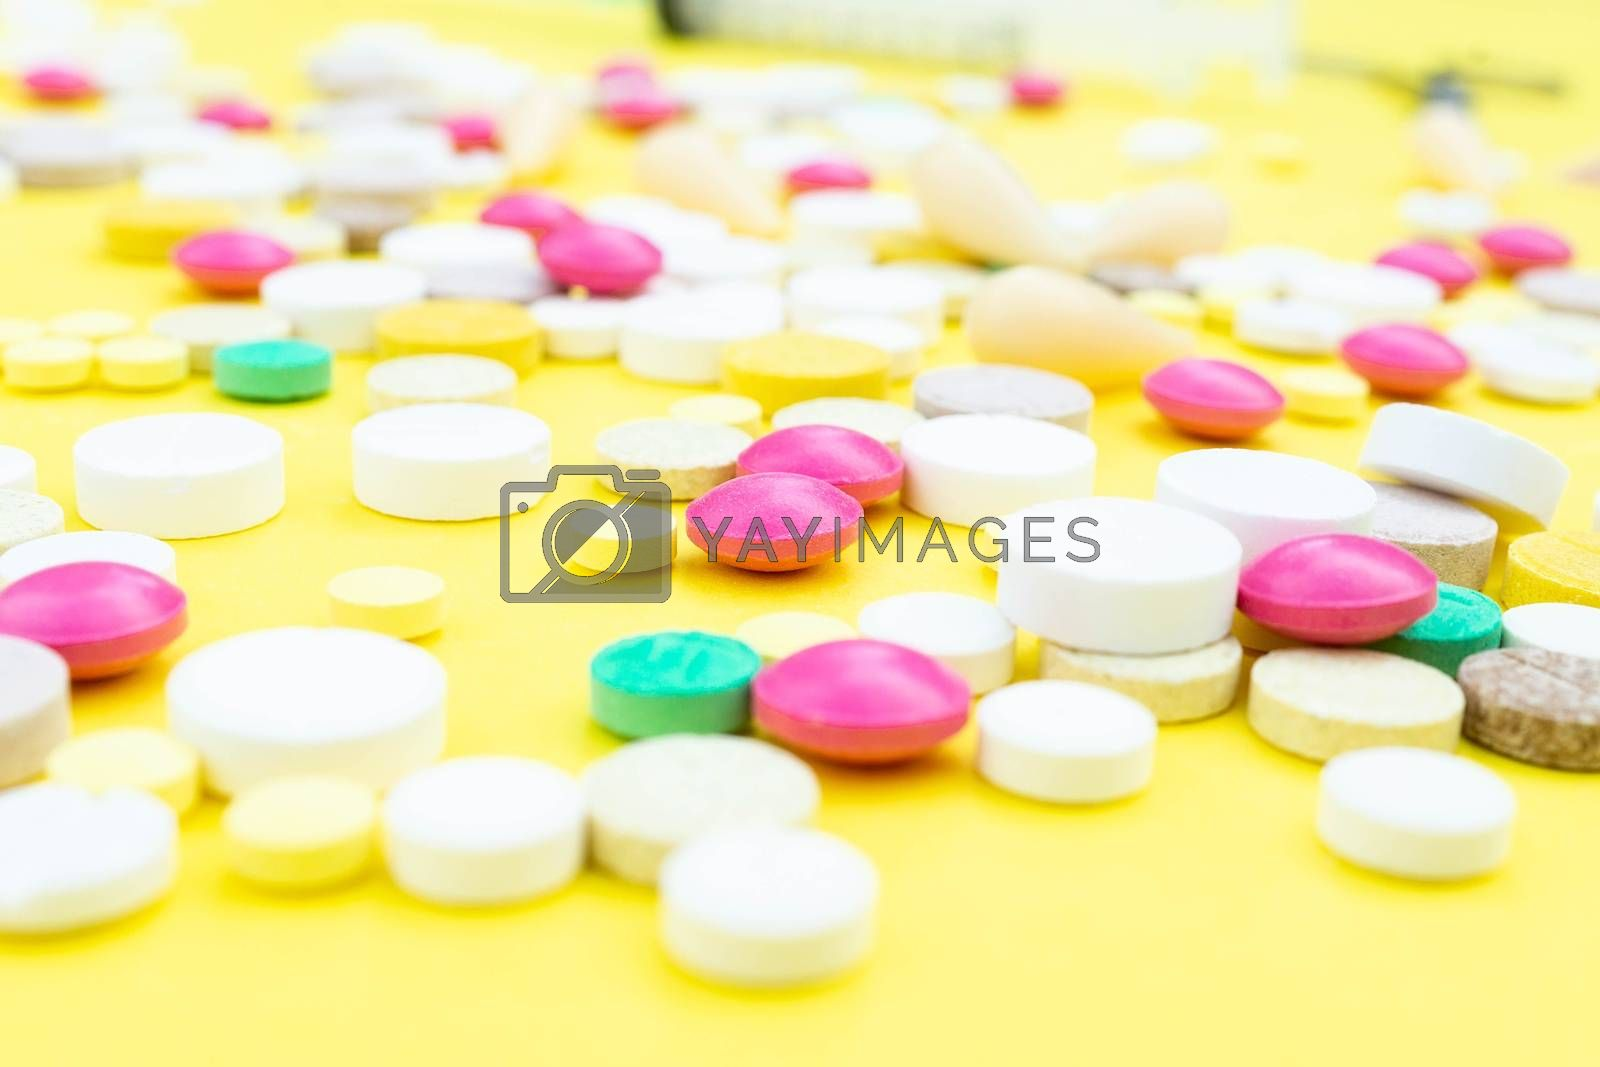 Assorted pharmaceutical medicine pills, tablets and capsules over yellow background